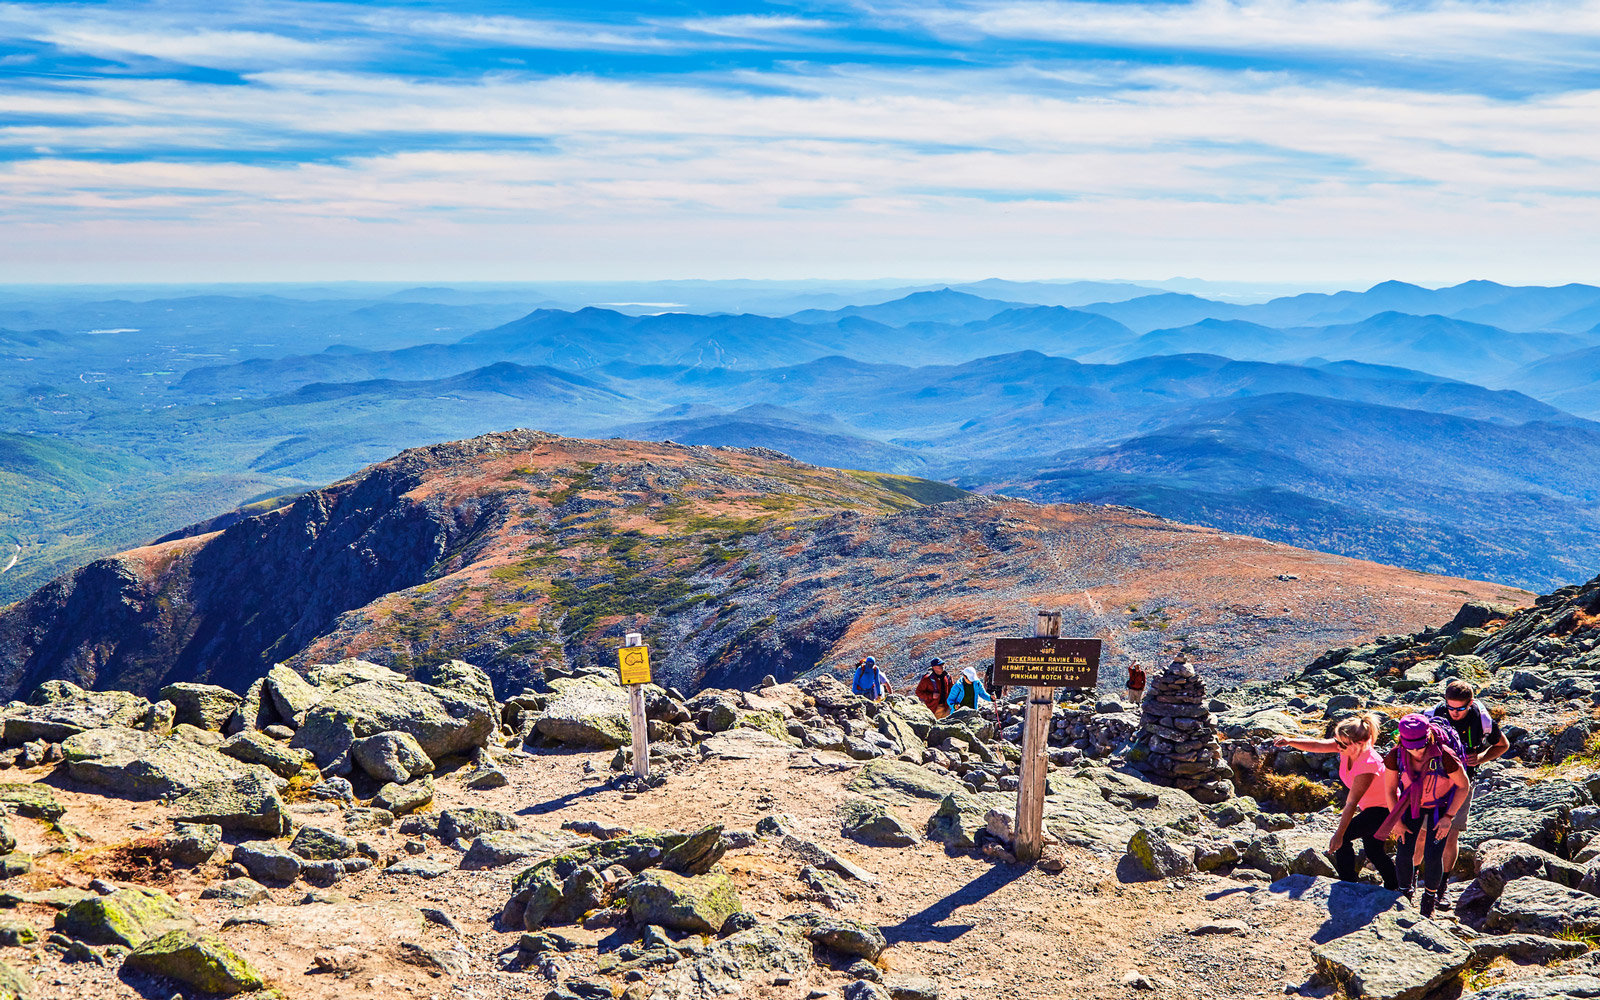 Hikers reaching the summit of Mt Washington after climbing the trail up the mountain side,Mt Washington,New Hampshire,USA